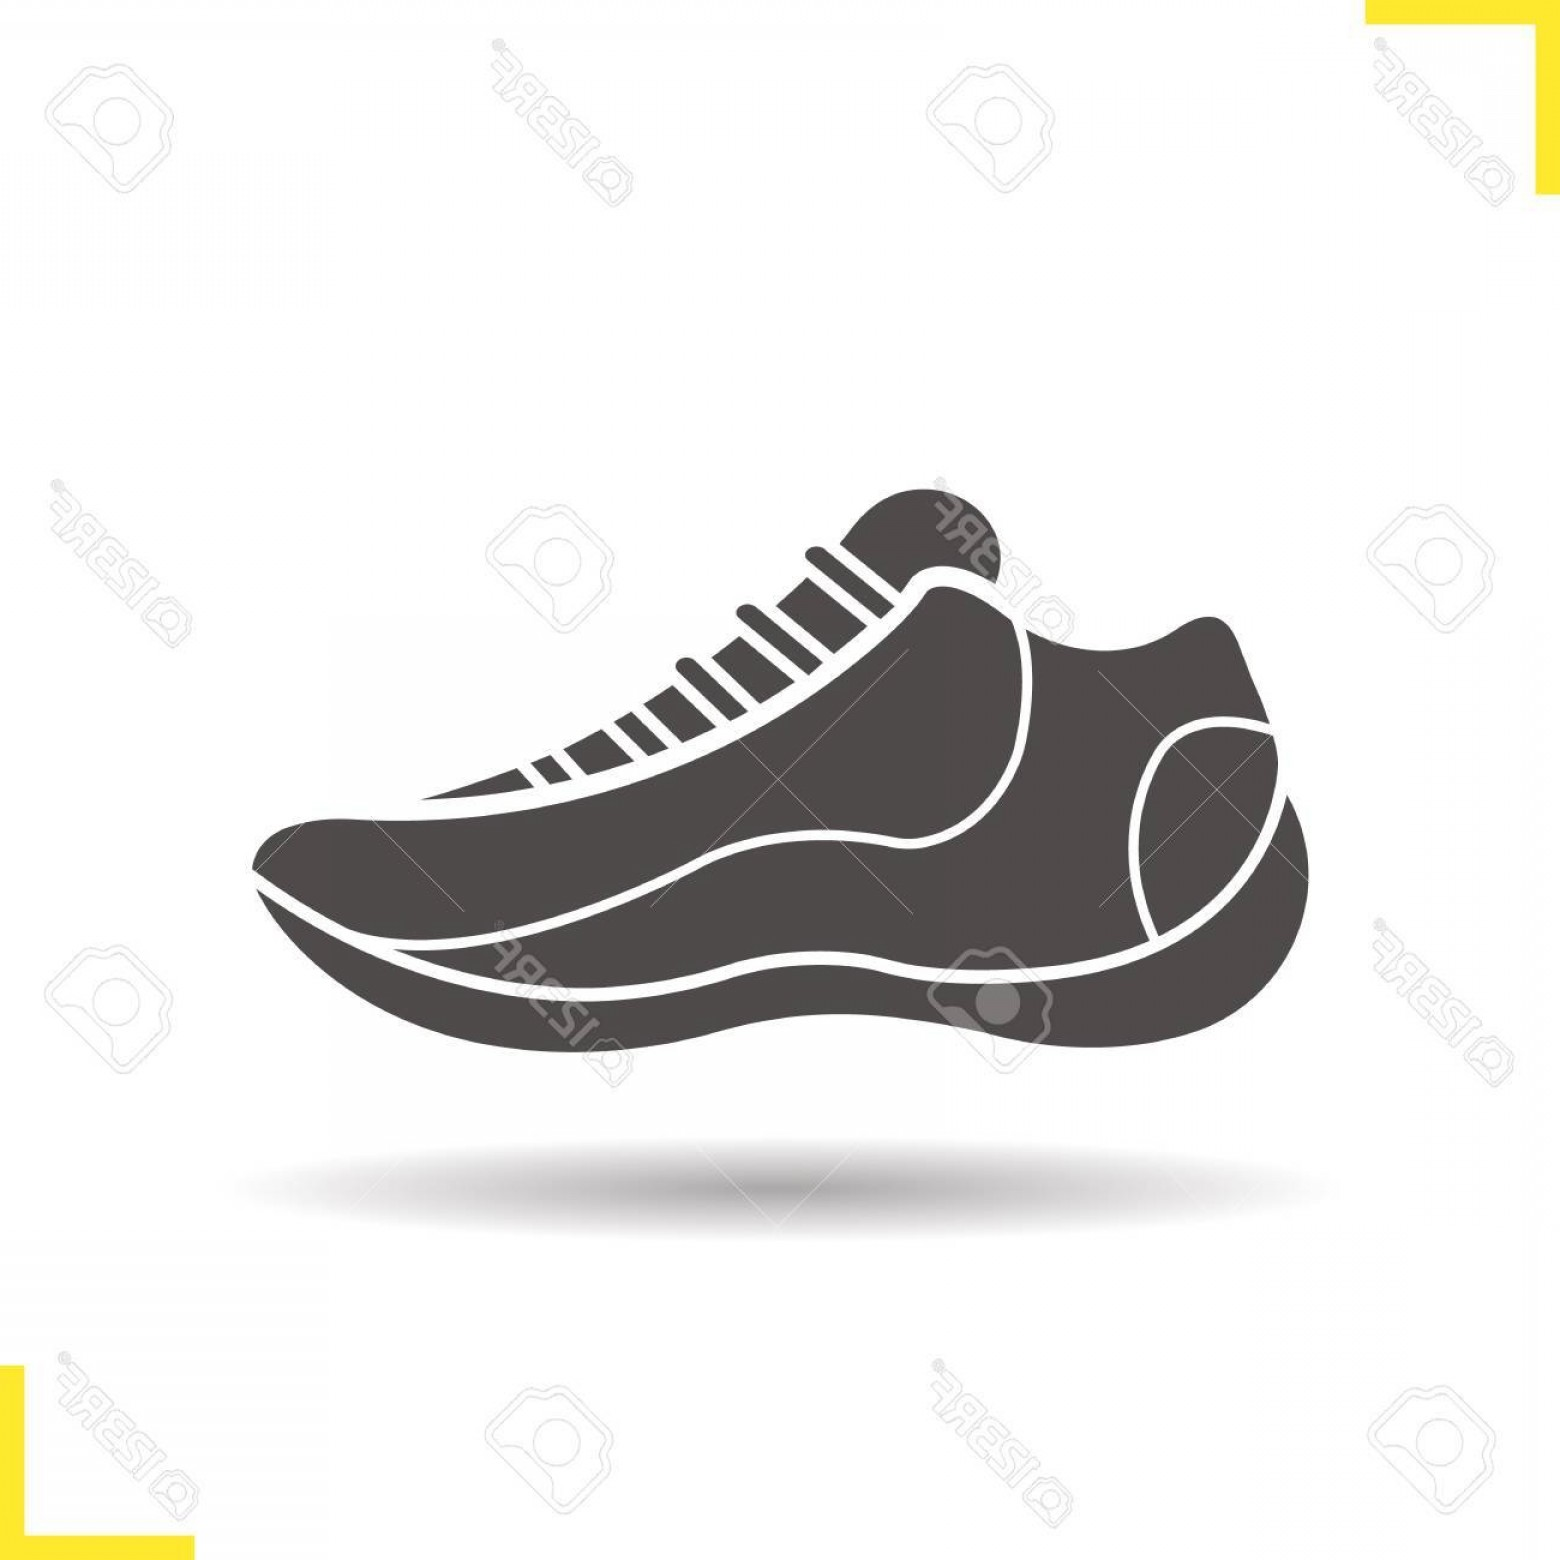 Sneaker Silhouette Vector: Photostock Vector Sneaker Icon Drop Shadow Running Shoe Silhouette Symbol Sport Footwear Vector Isolated Illustration